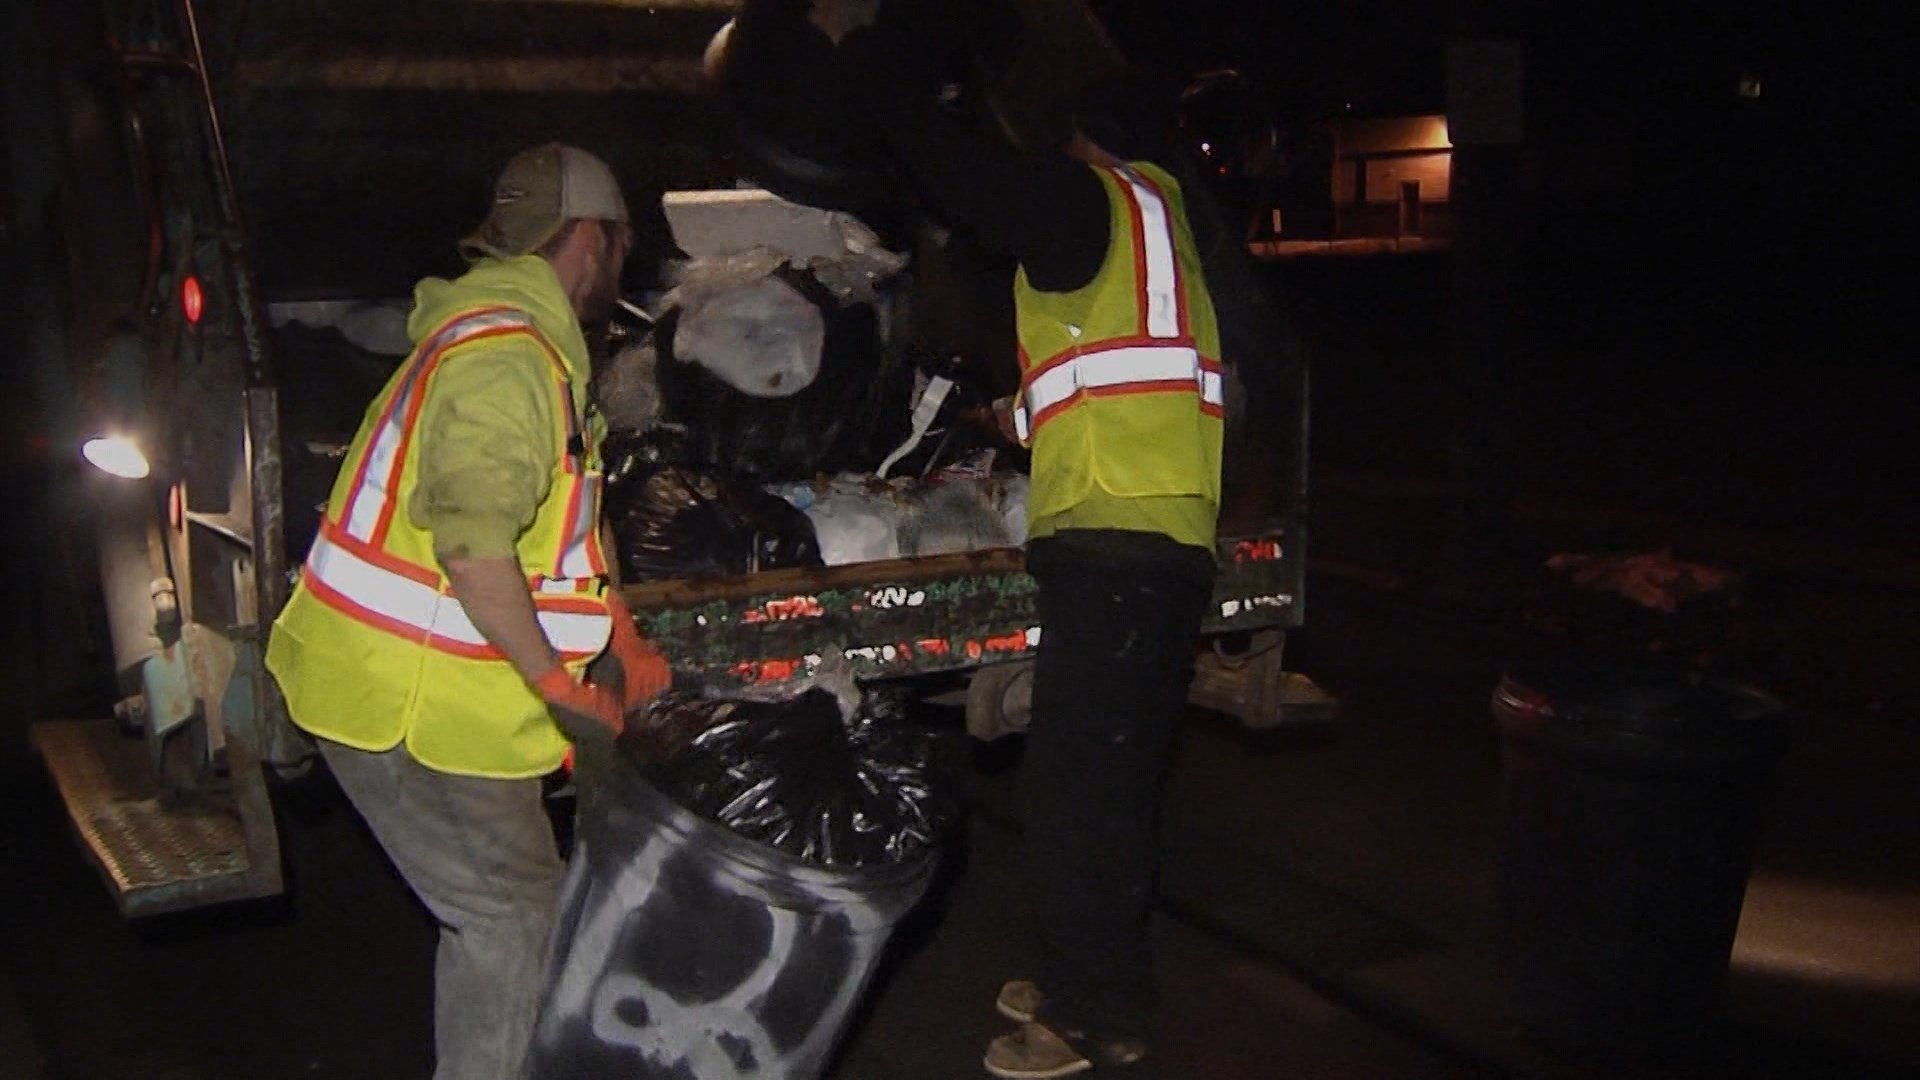 2021 Erie Christmas Garbage Pickup Schedule Holidays Delay Garbage Pickup In City Of Erie Union City Boroug Erie News Now Wicu And Wsee In Erie Pa